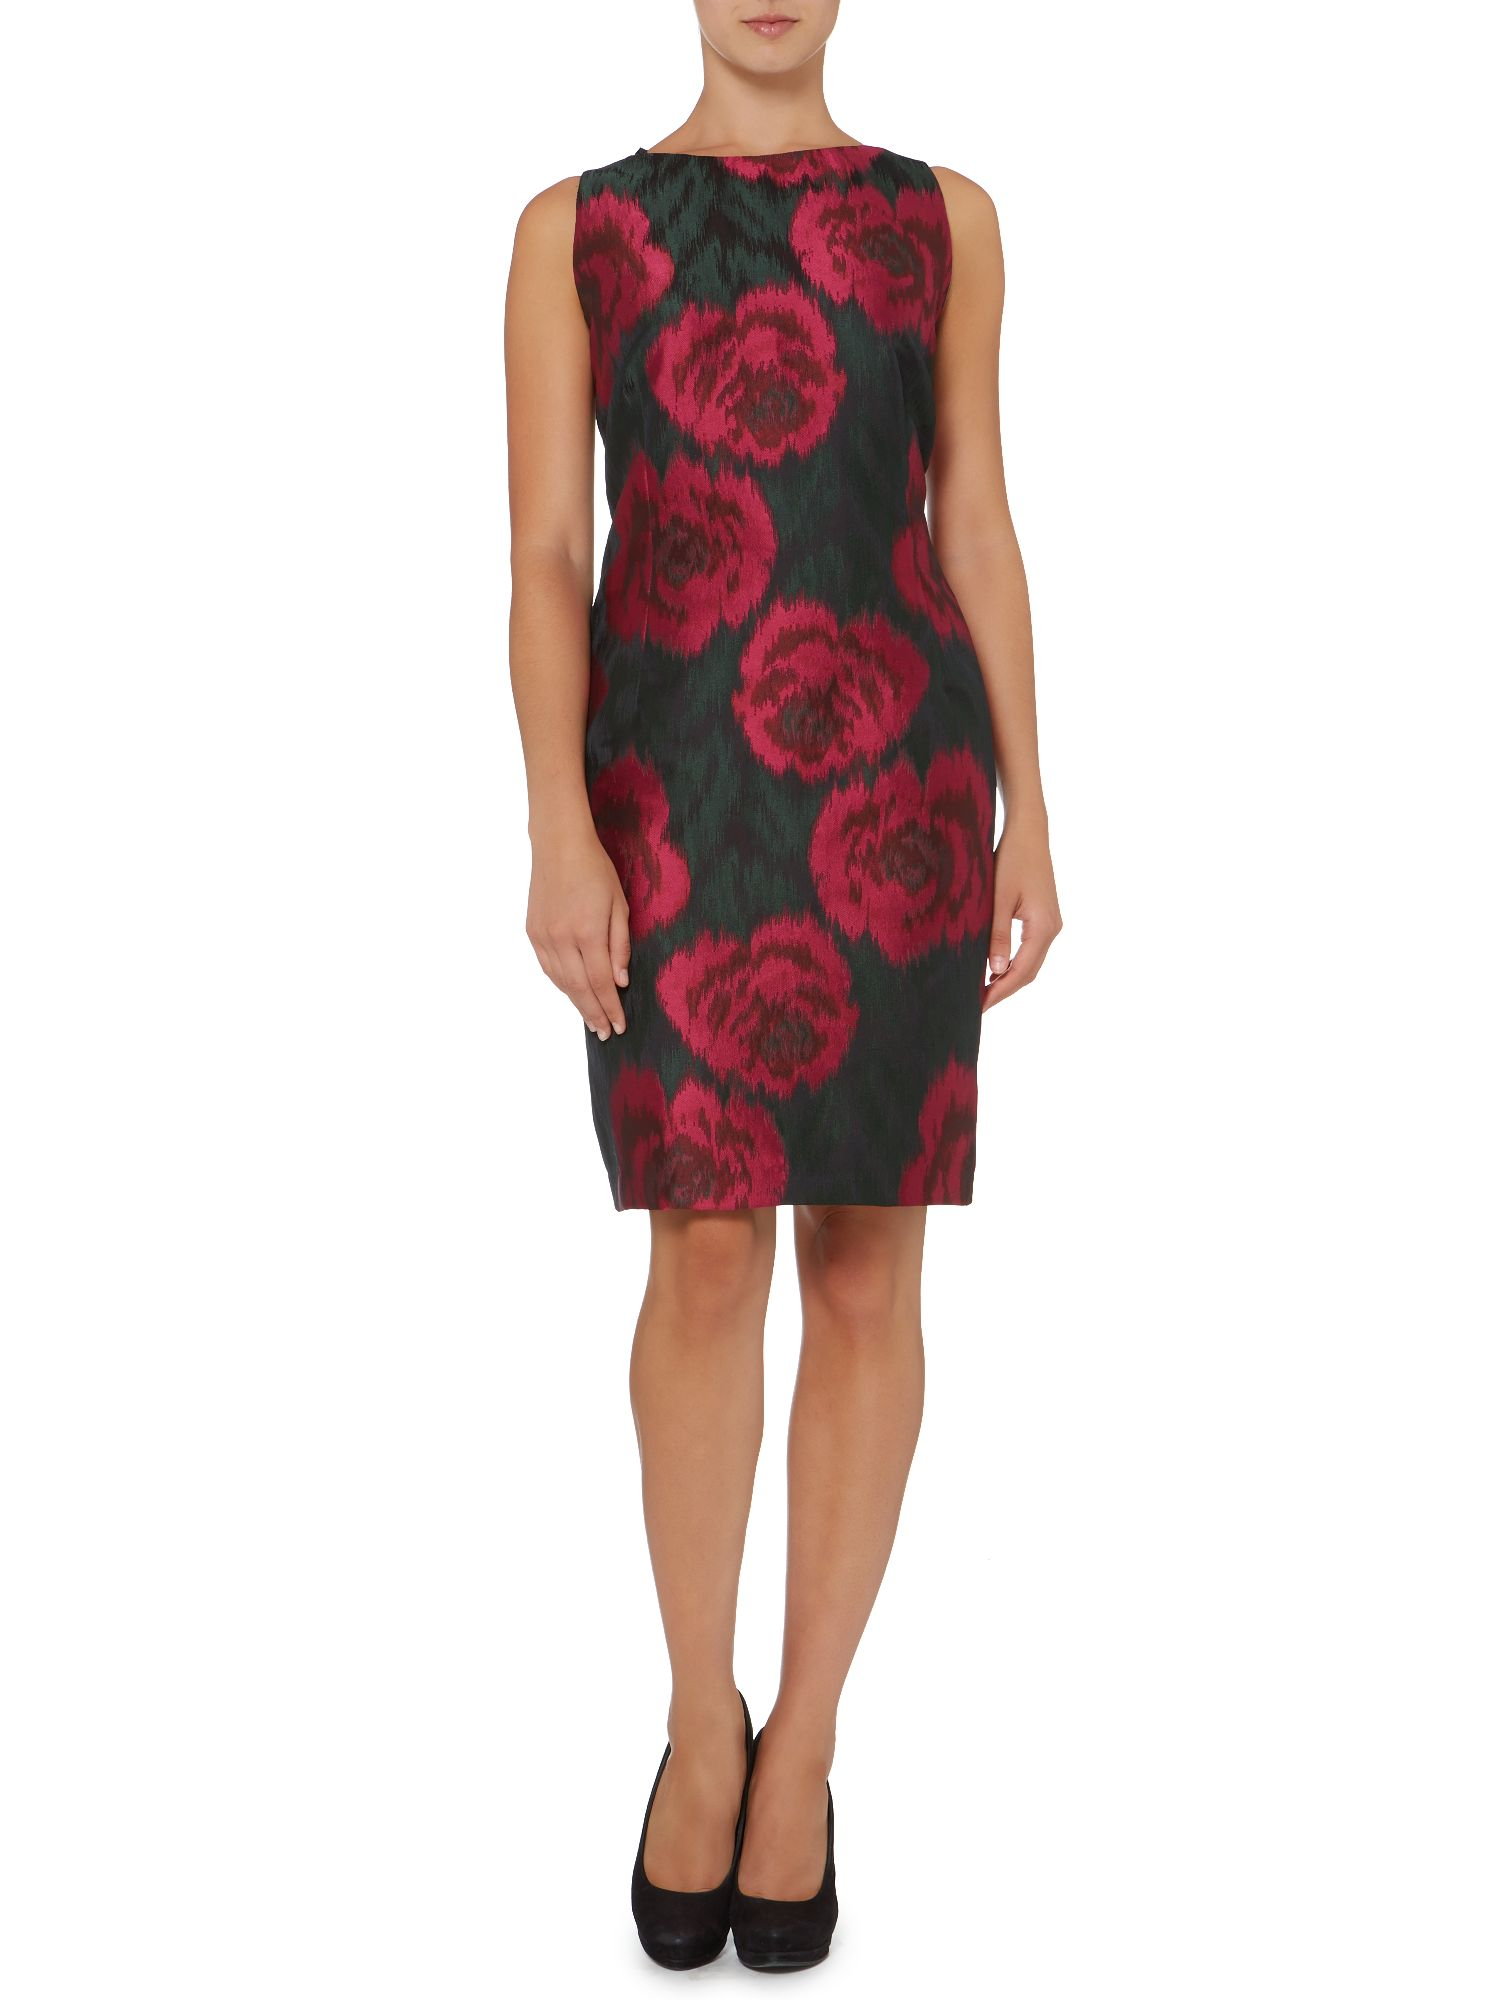 Jacquard rose dress